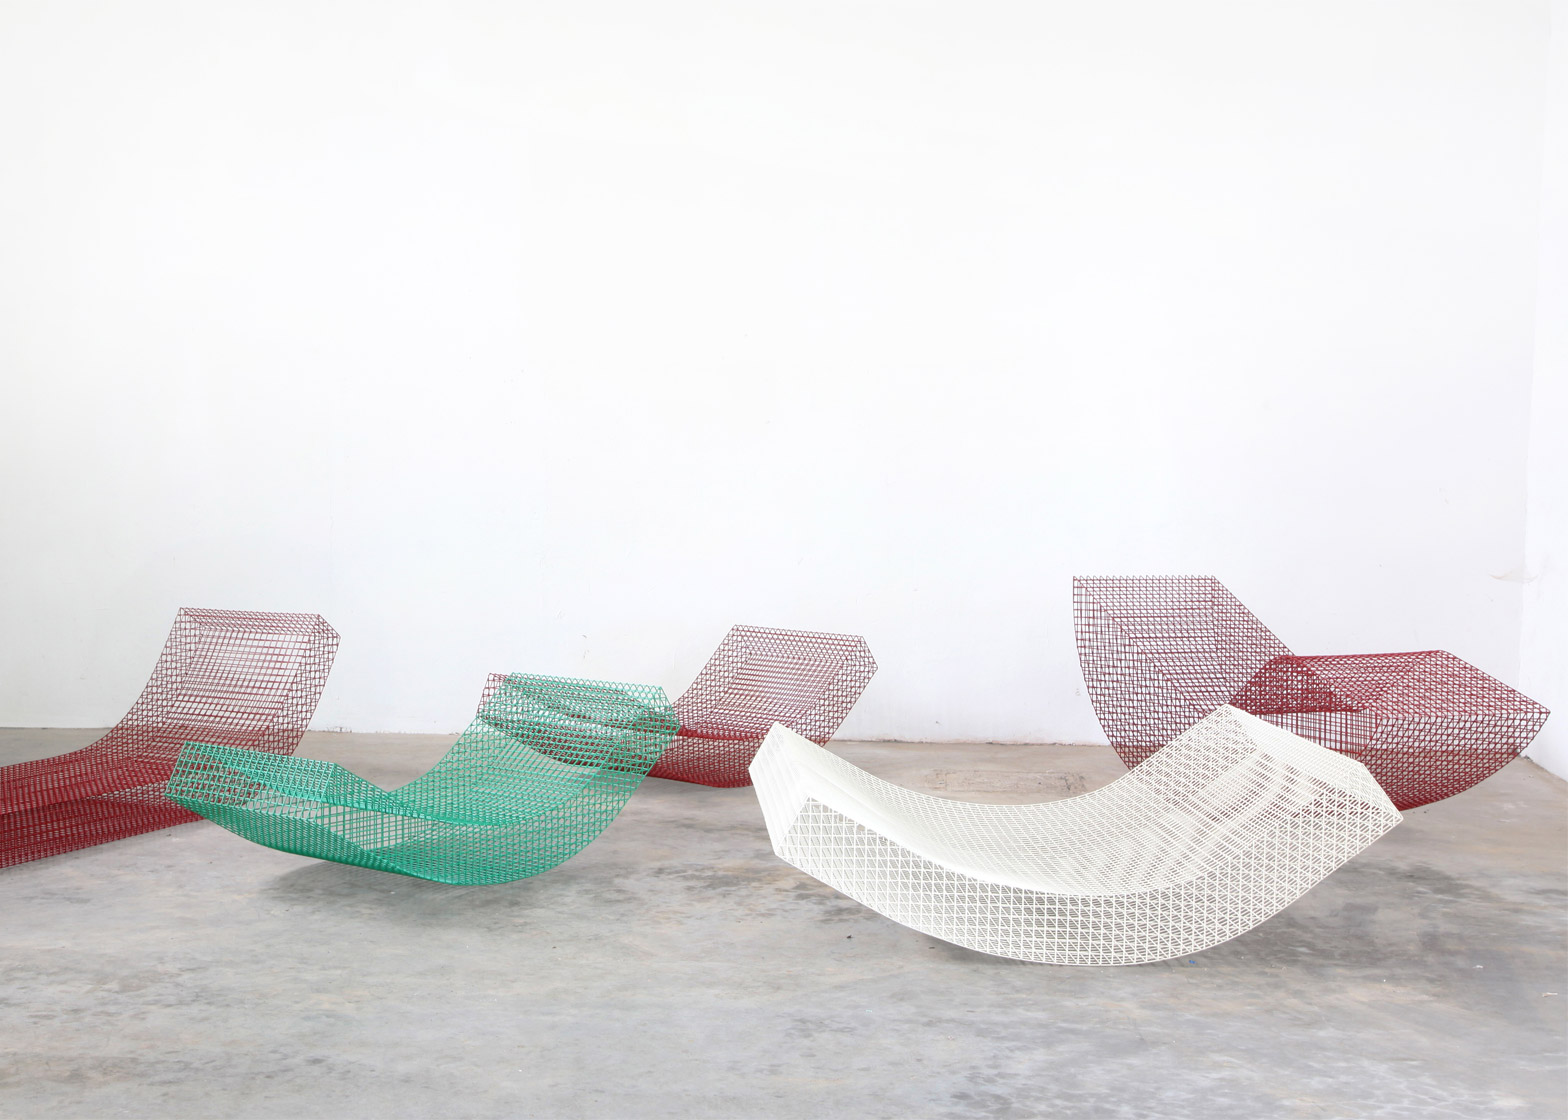 Muller van Severen designs rocking wire daybeds for Spanish summer house